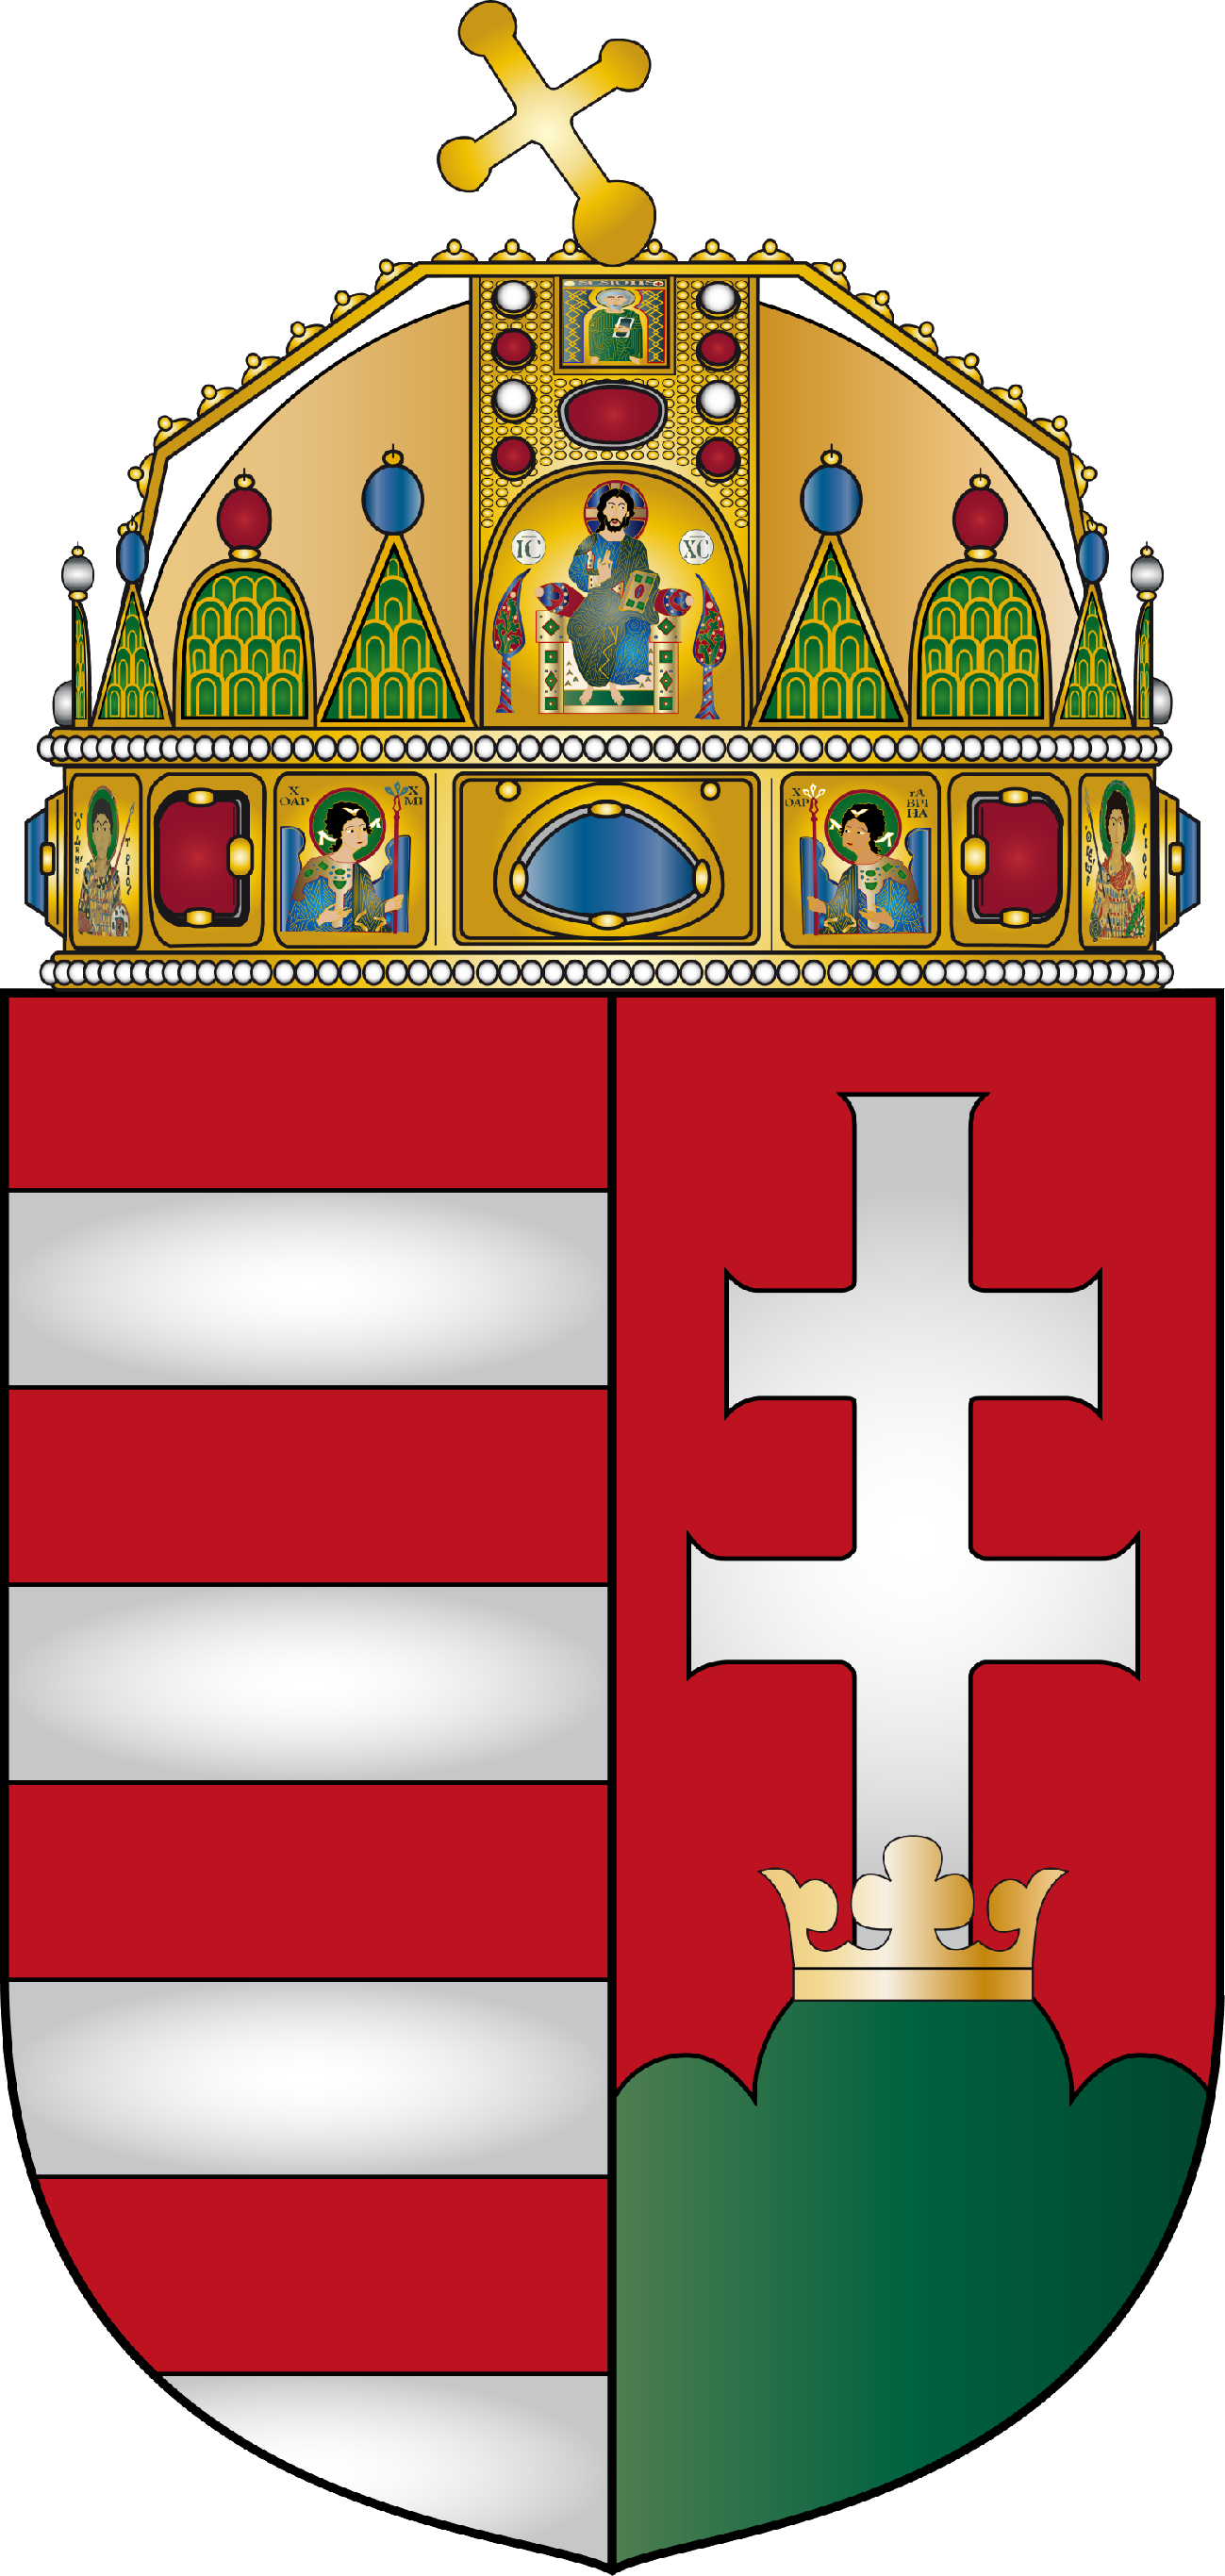 http://upload.wikimedia.org/wikipedia/commons/1/13/Coat_of_arms_of_Hungary.png